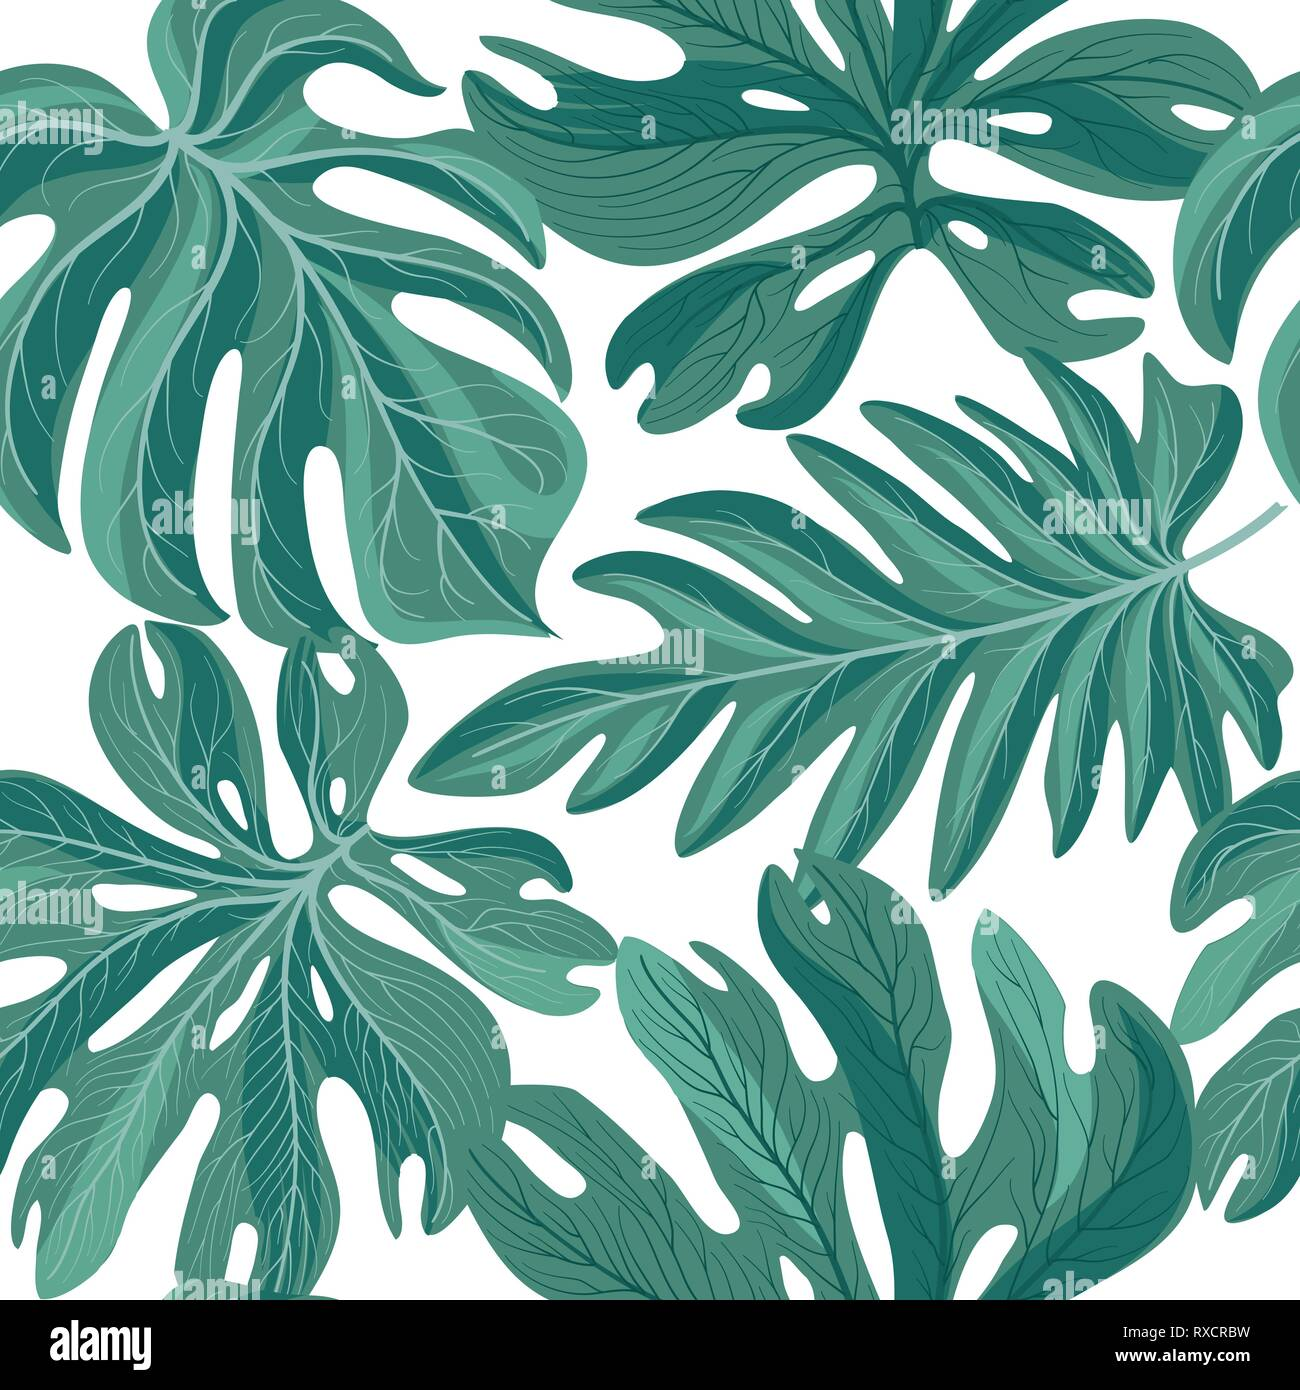 Leaf Background – Pikbest has 30793 leaf background design images templates for free.